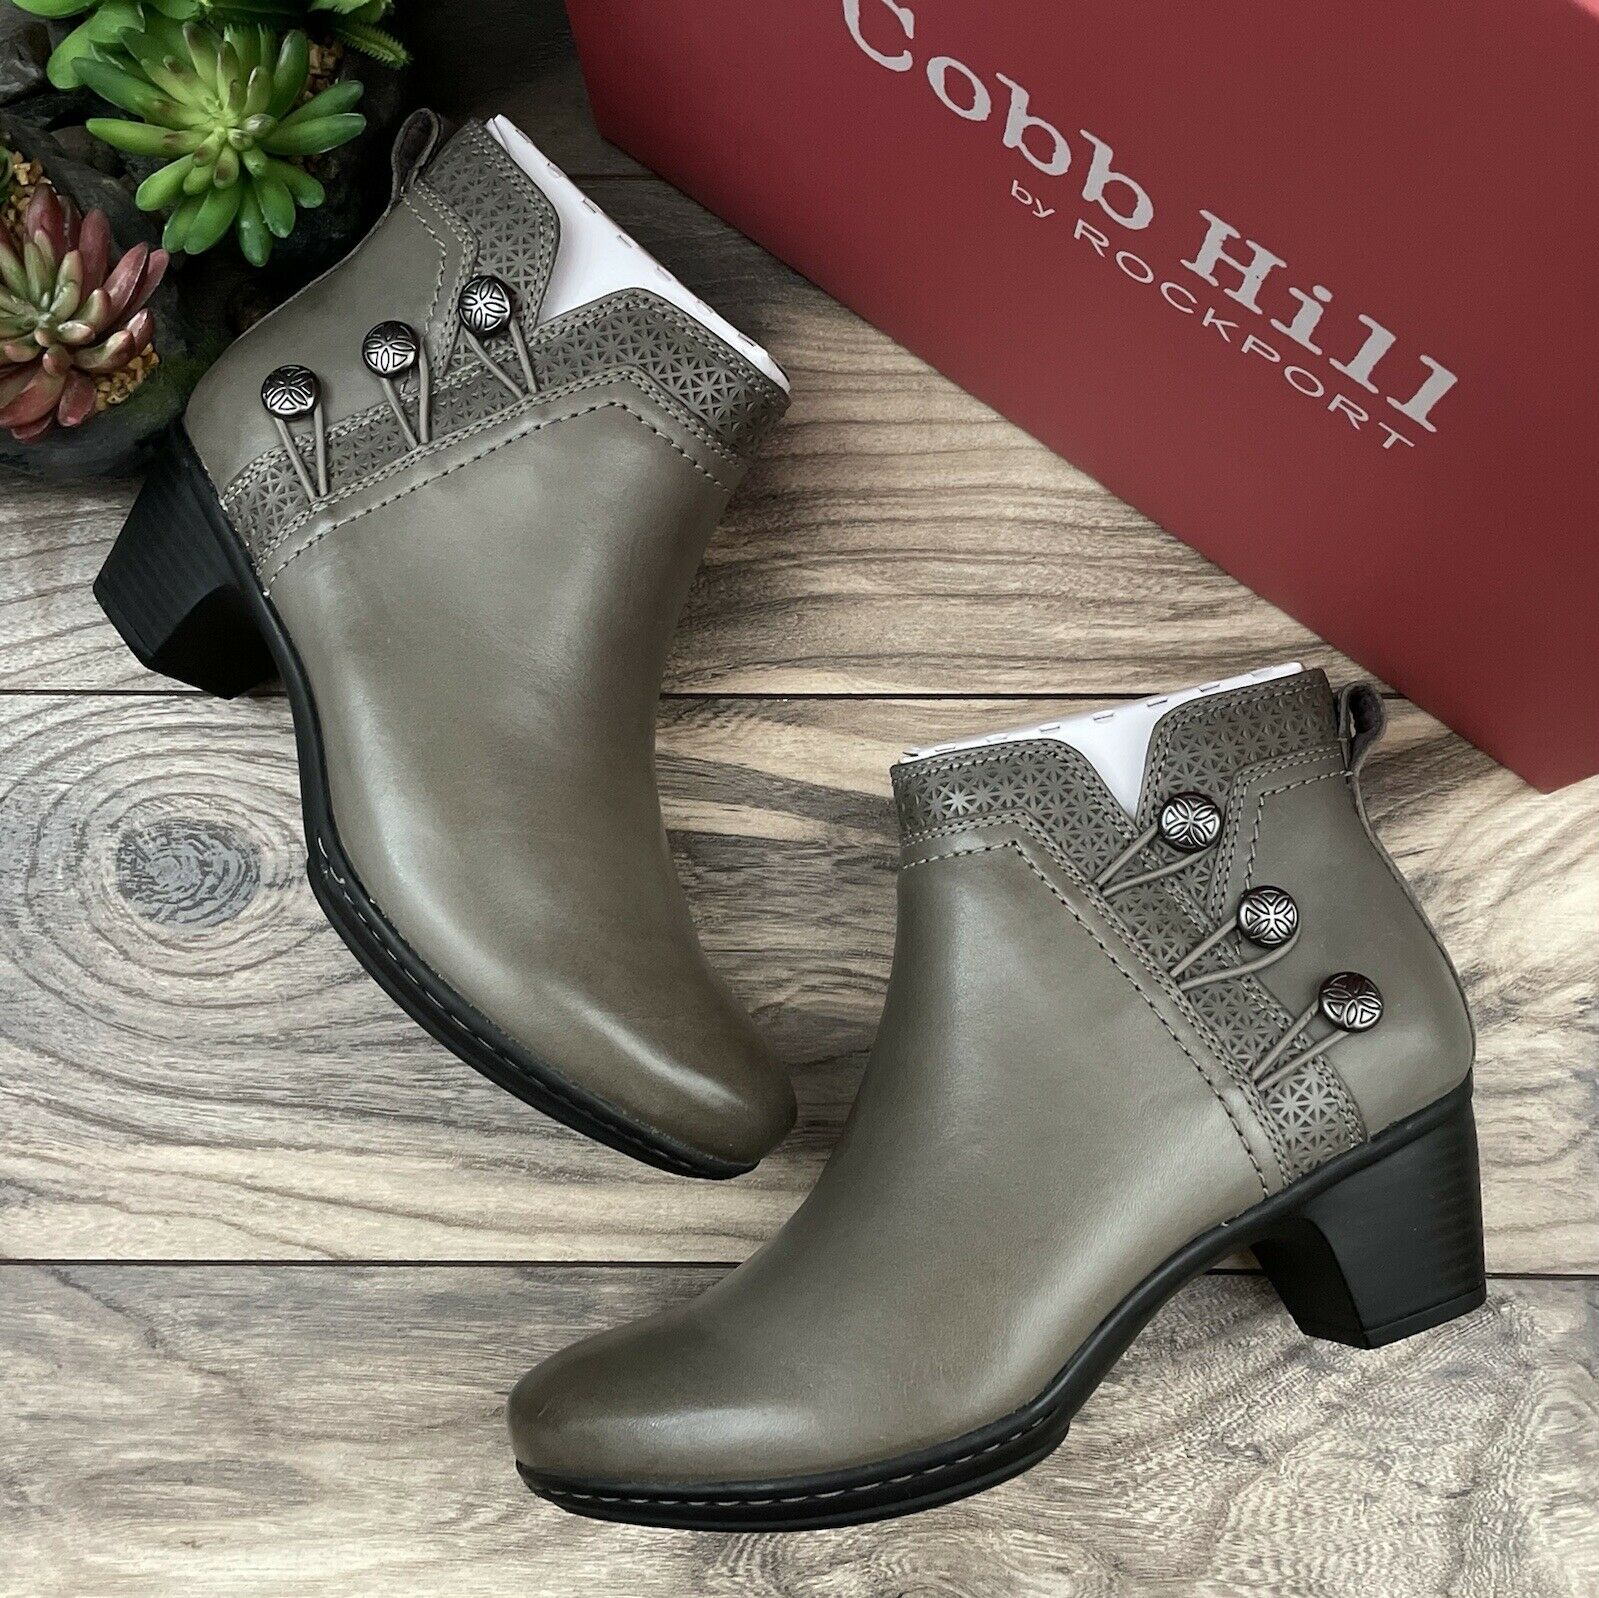 NIB Rockport Cobb Hill Kailyn Ankle Boot Bootie Grey Leather 8M 39